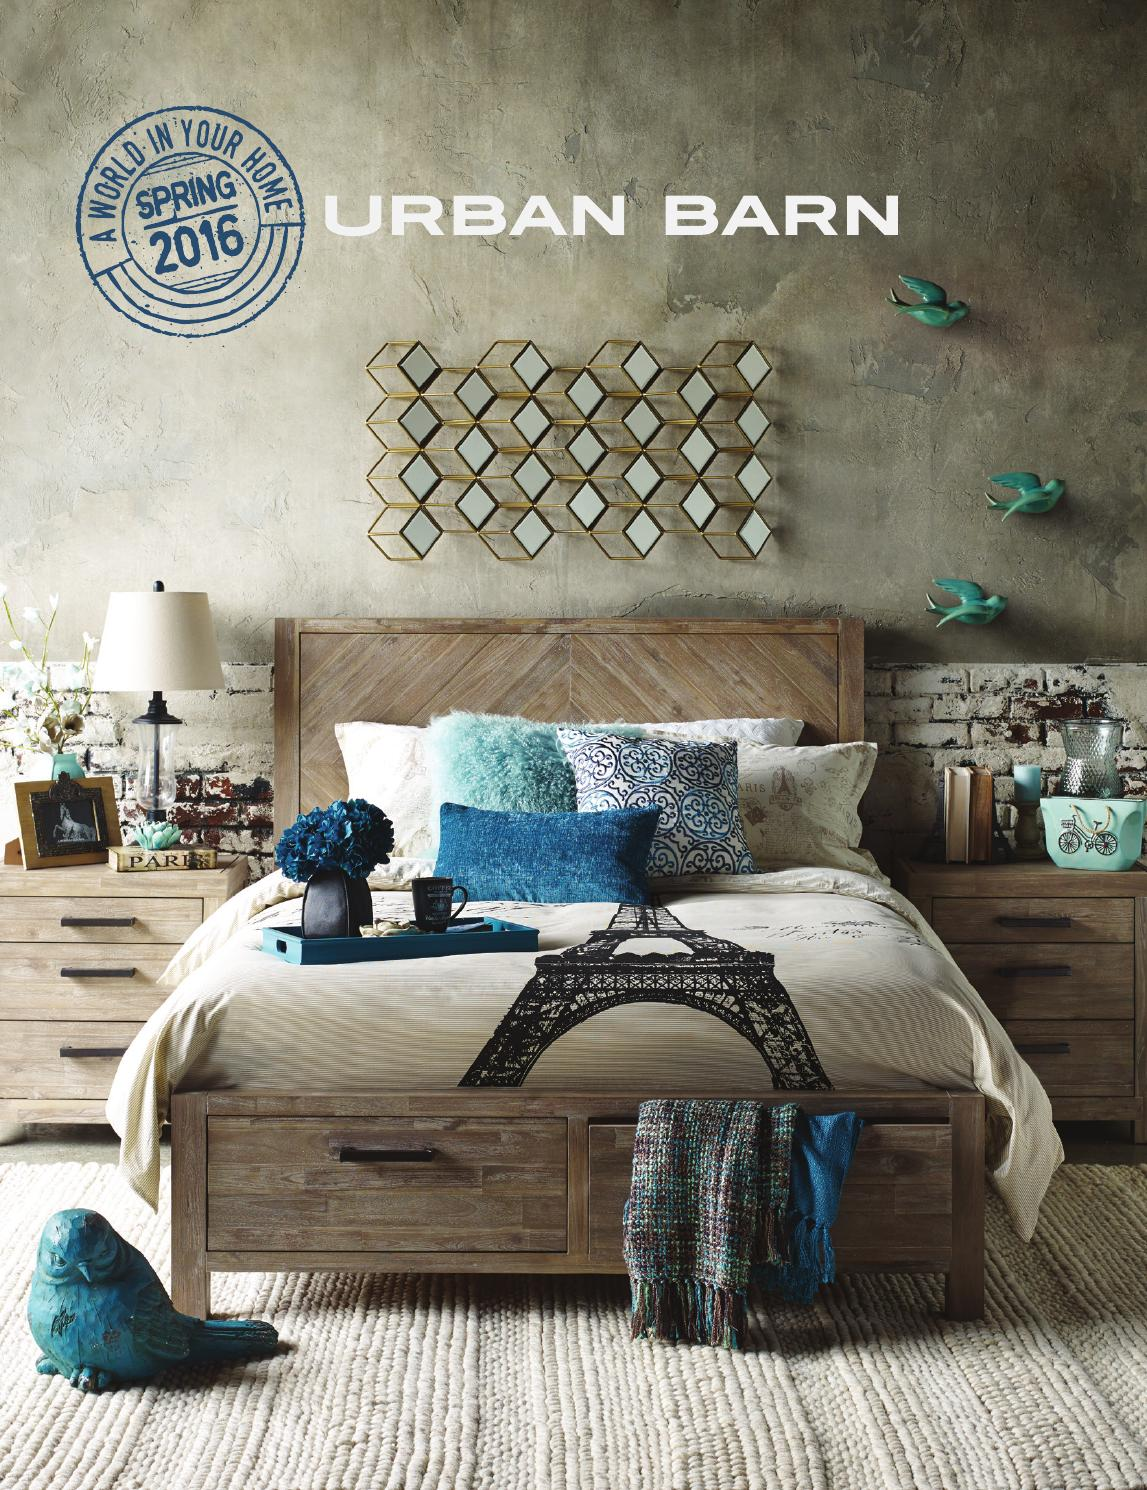 Spring 2016 | A world in your home by Urban Barn - issuu